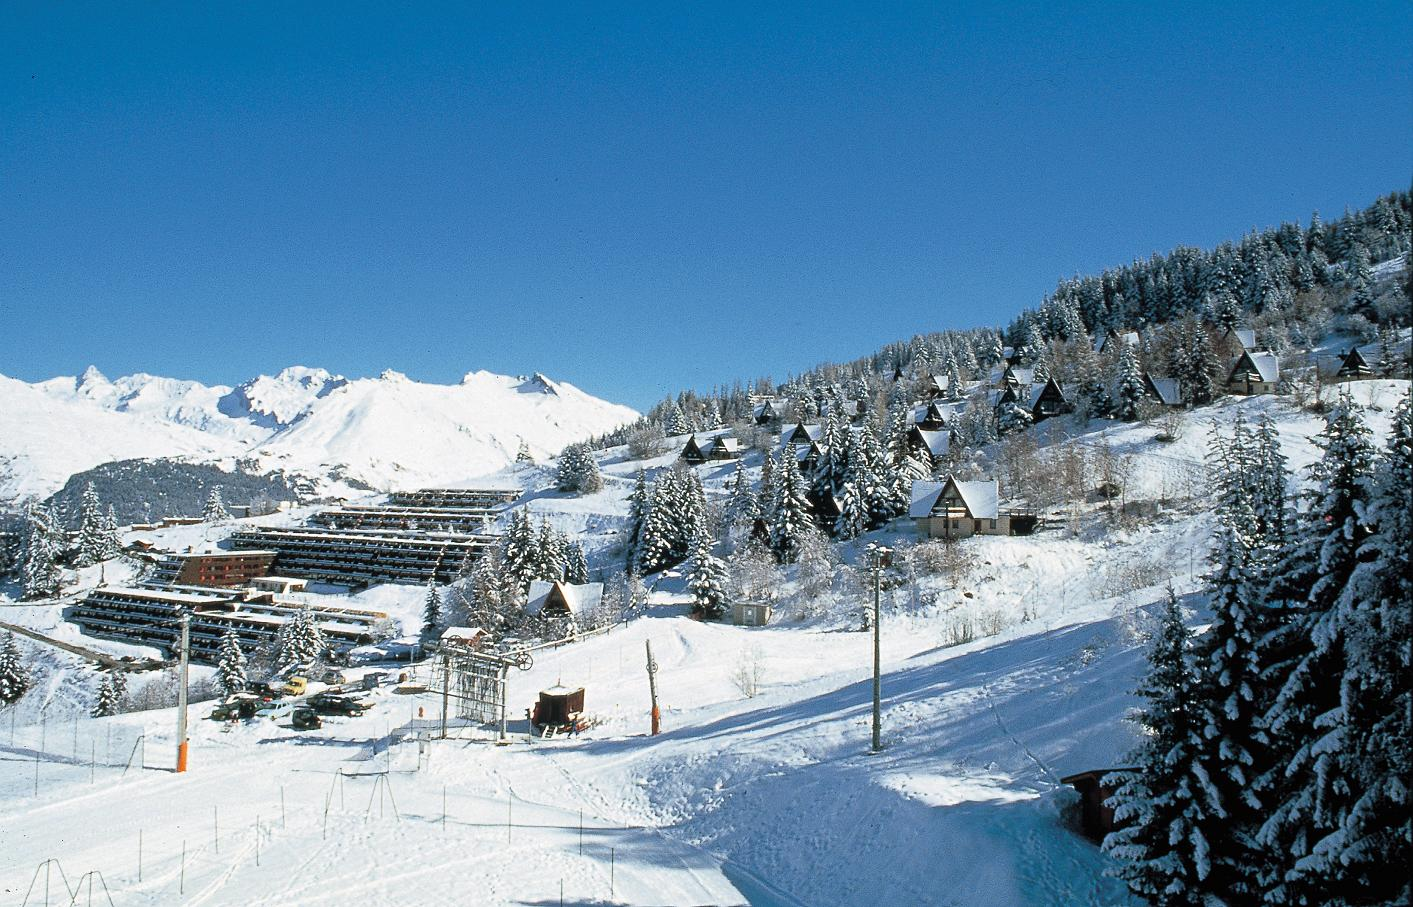 Les Arcs